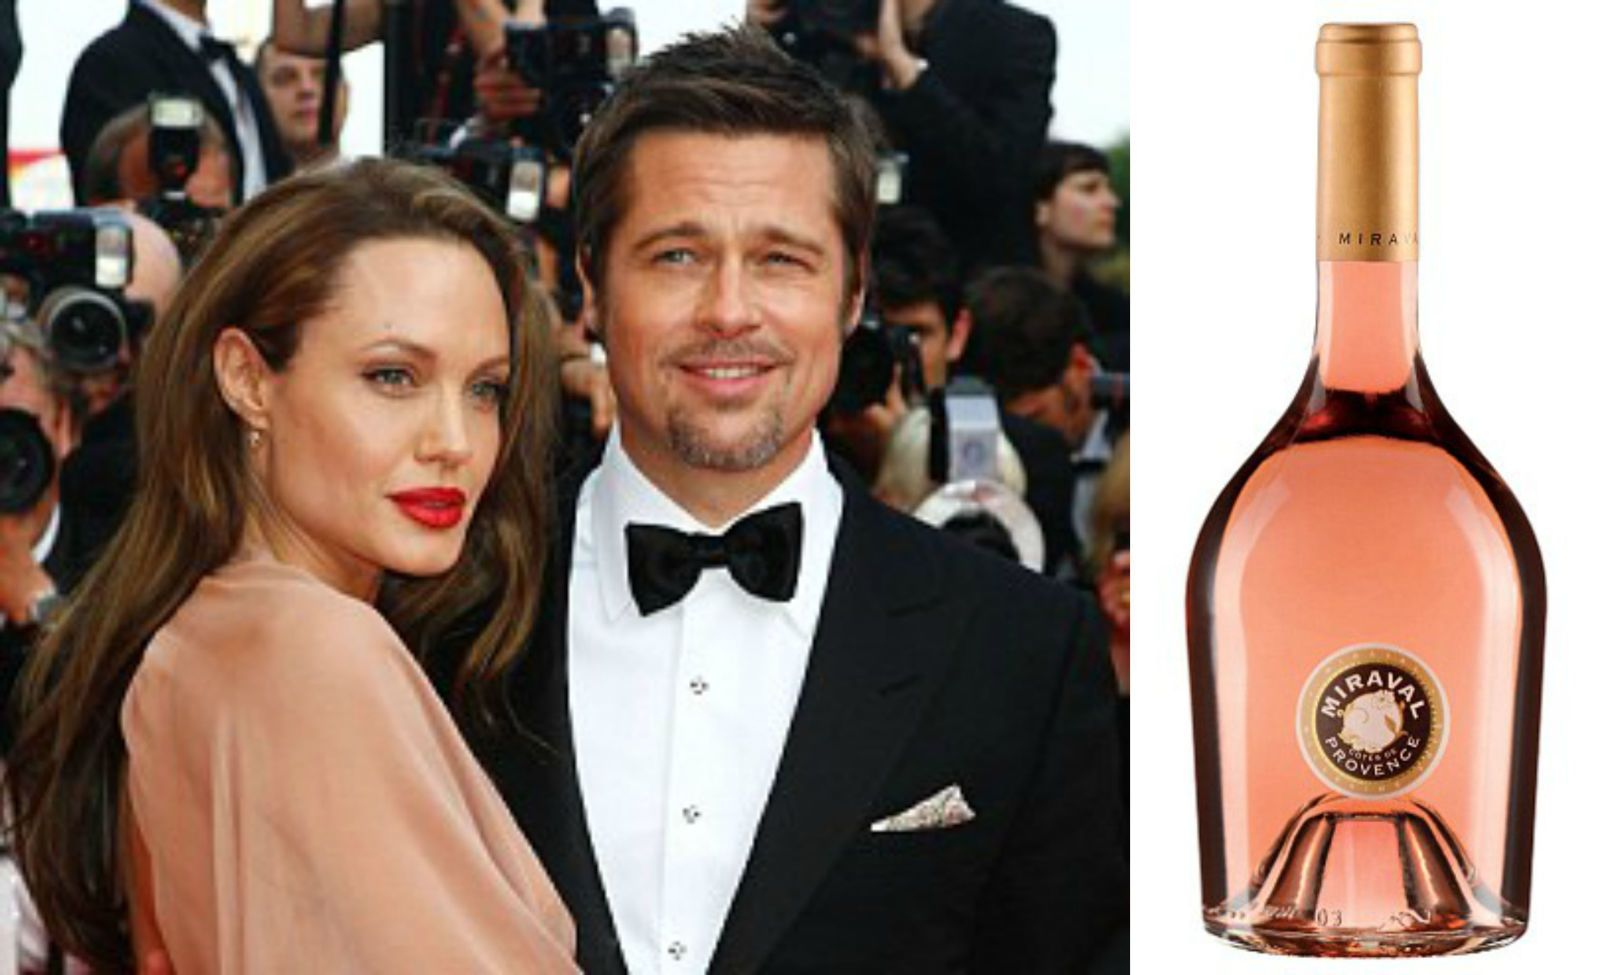 You Can Now Buy Wine Made By Brad & Angelina  - Delish.com